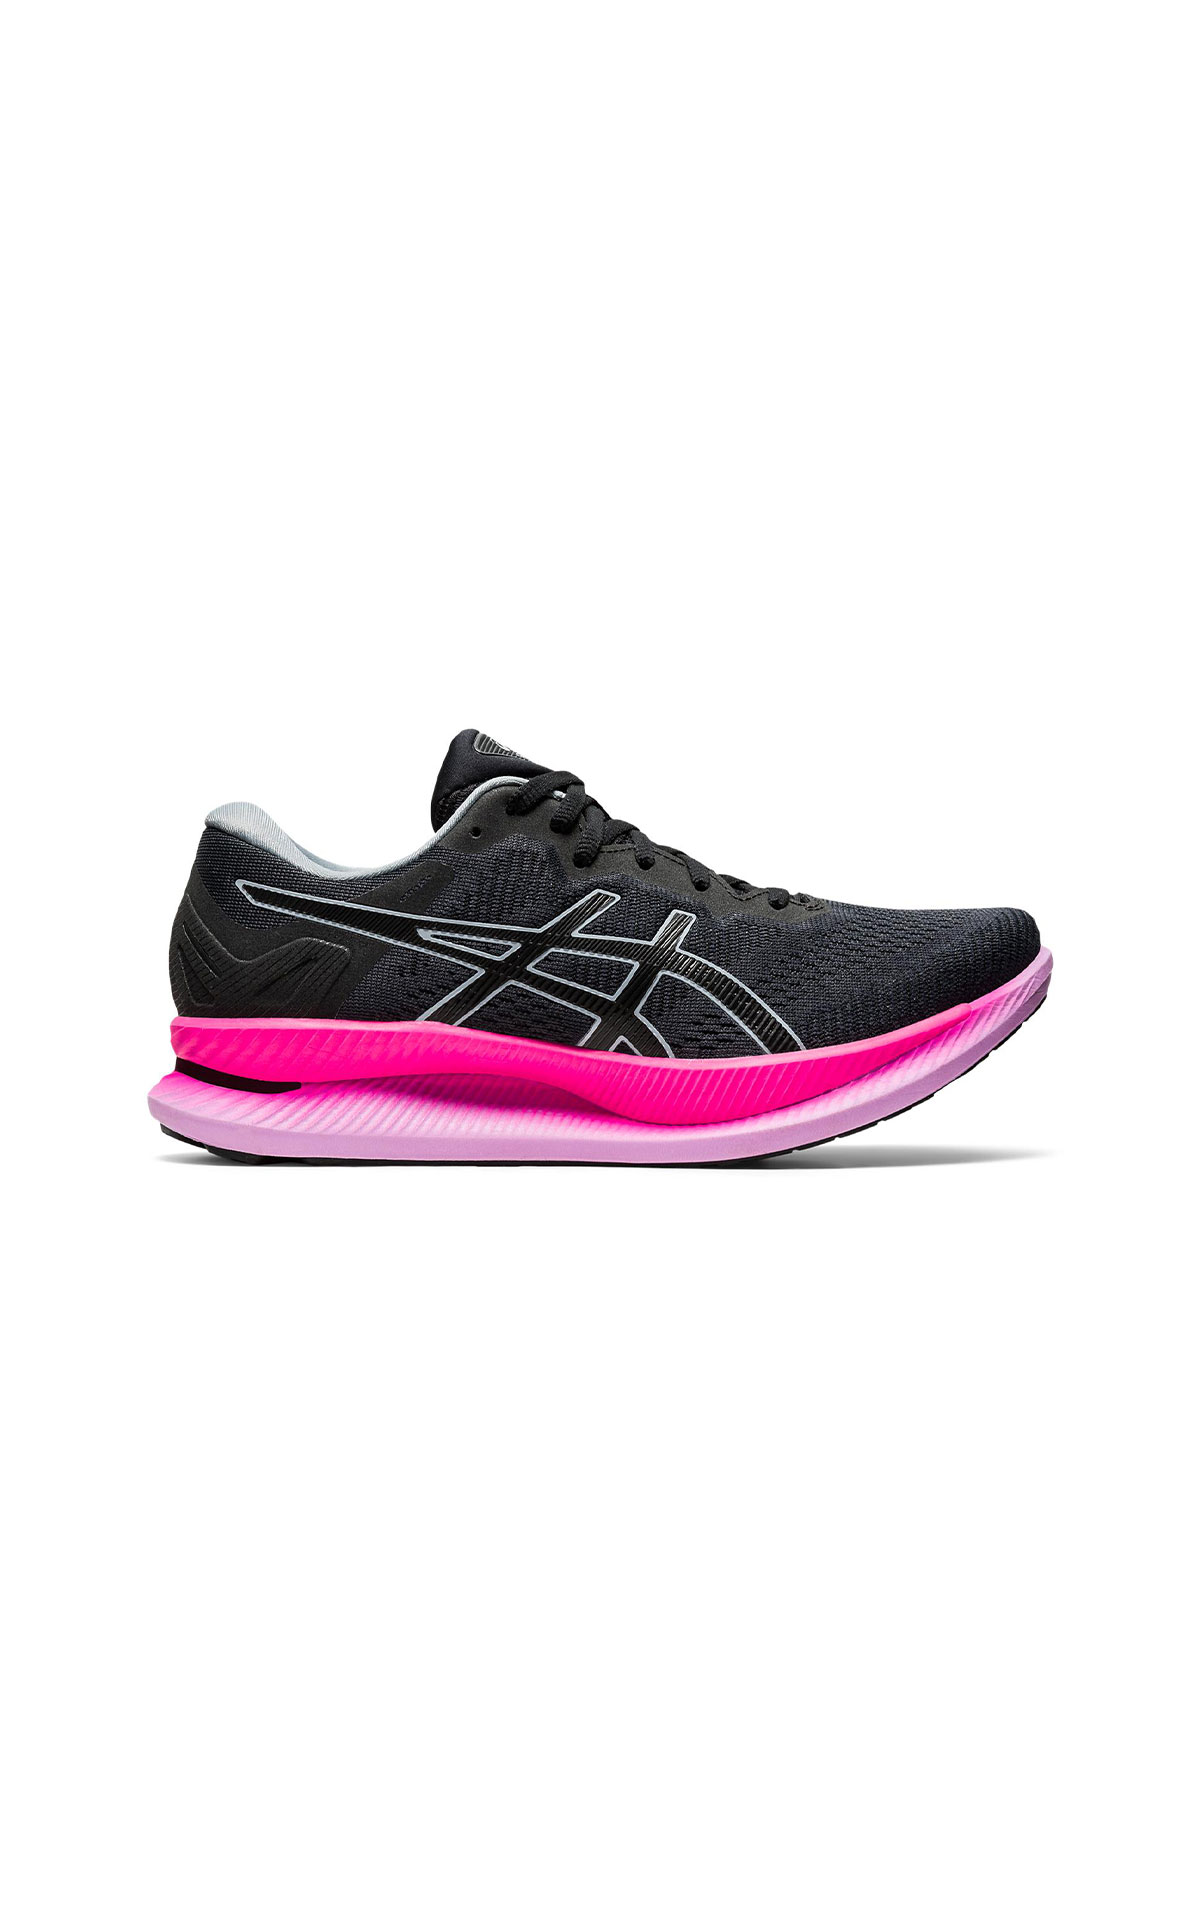 ASICS Women's black and pink Glideride trainer from Bicester Village